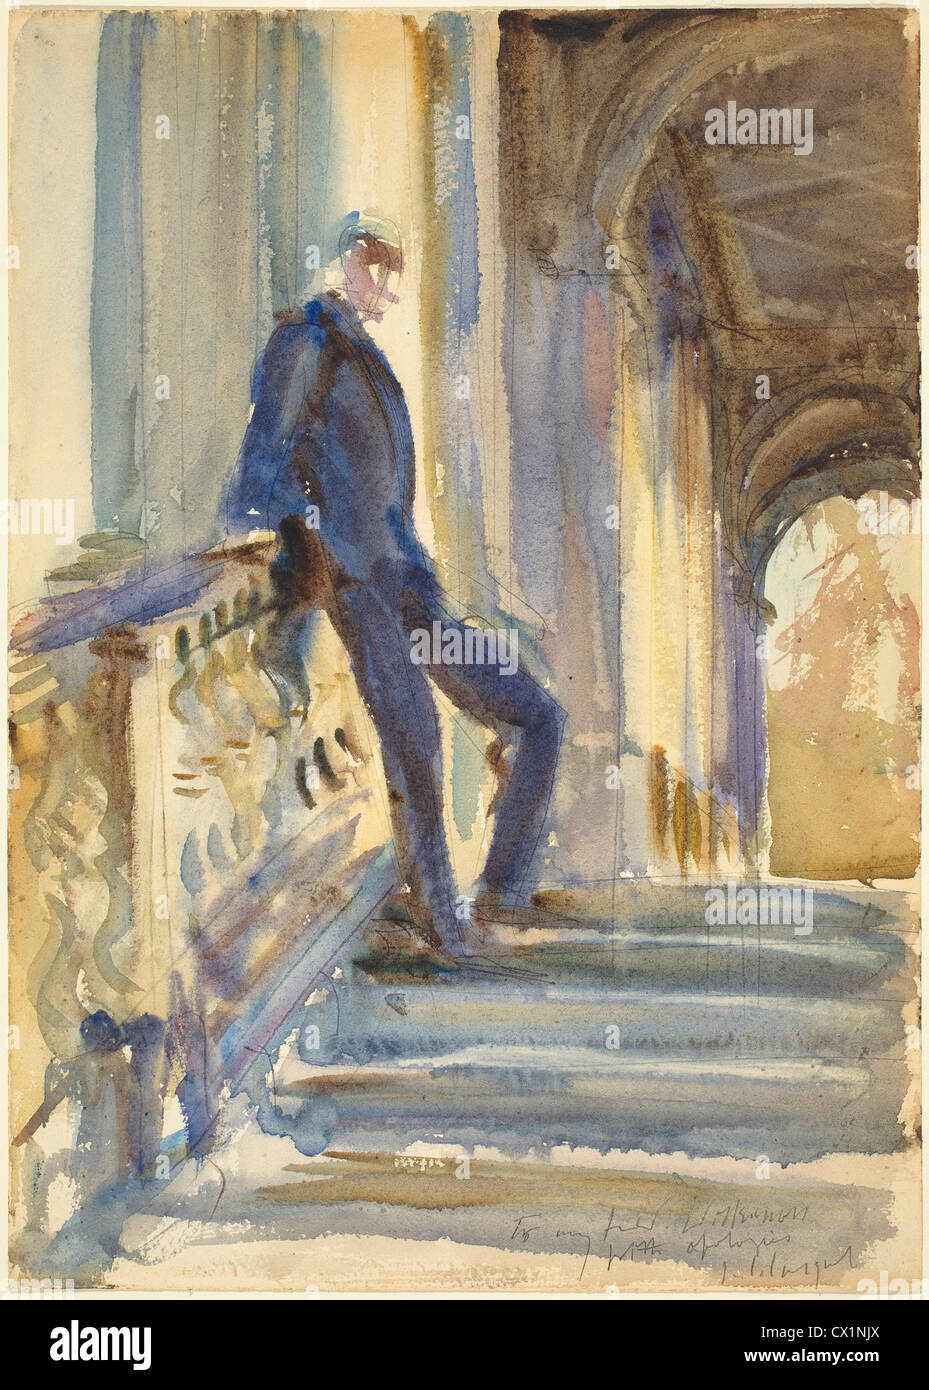 John Singer Sargent, Sir Neville Wilkenson on the Steps of a Venetian Palazzo, American, 1856 - 1925, 1905, watercolor - Stock Image